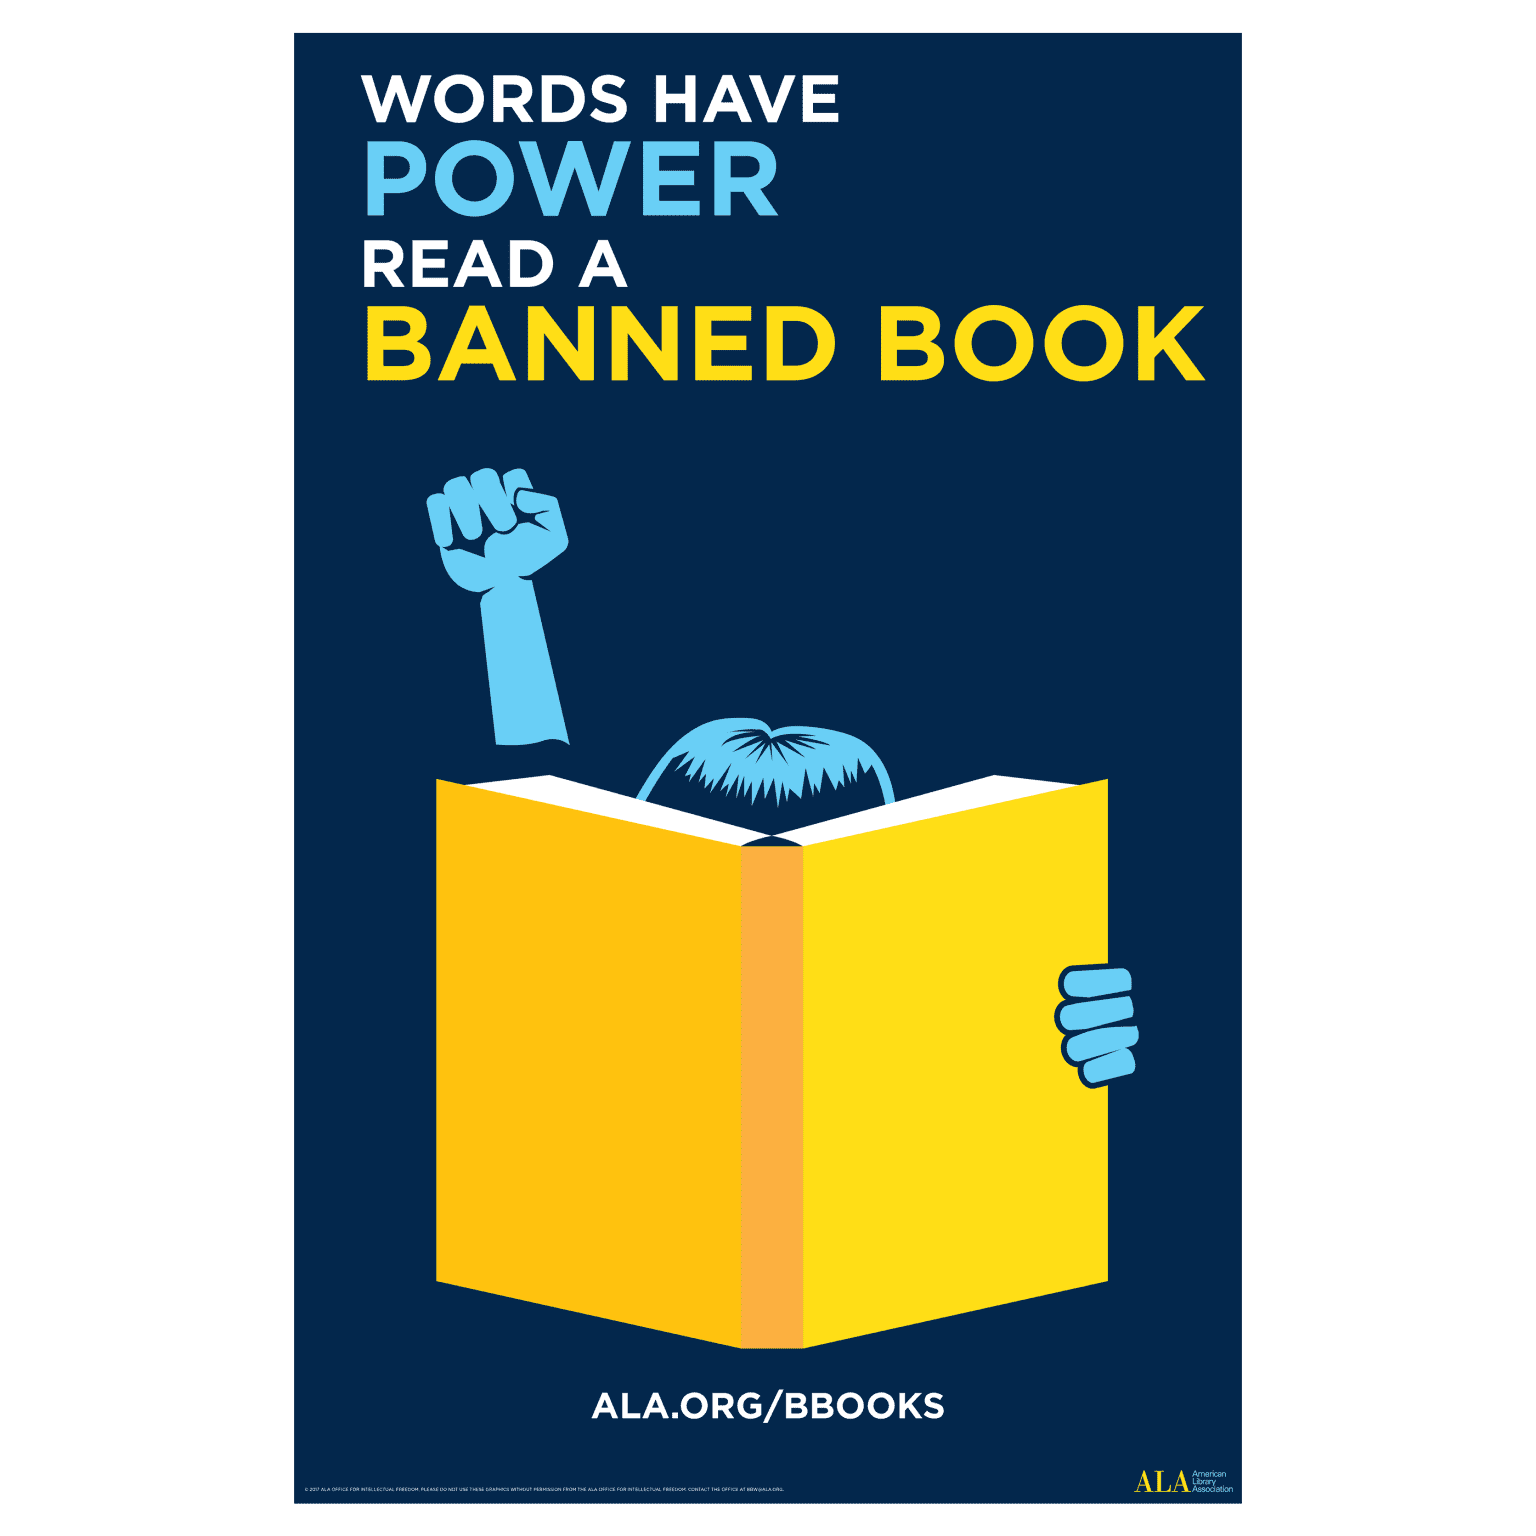 American Library Association Banned Books Week Identity